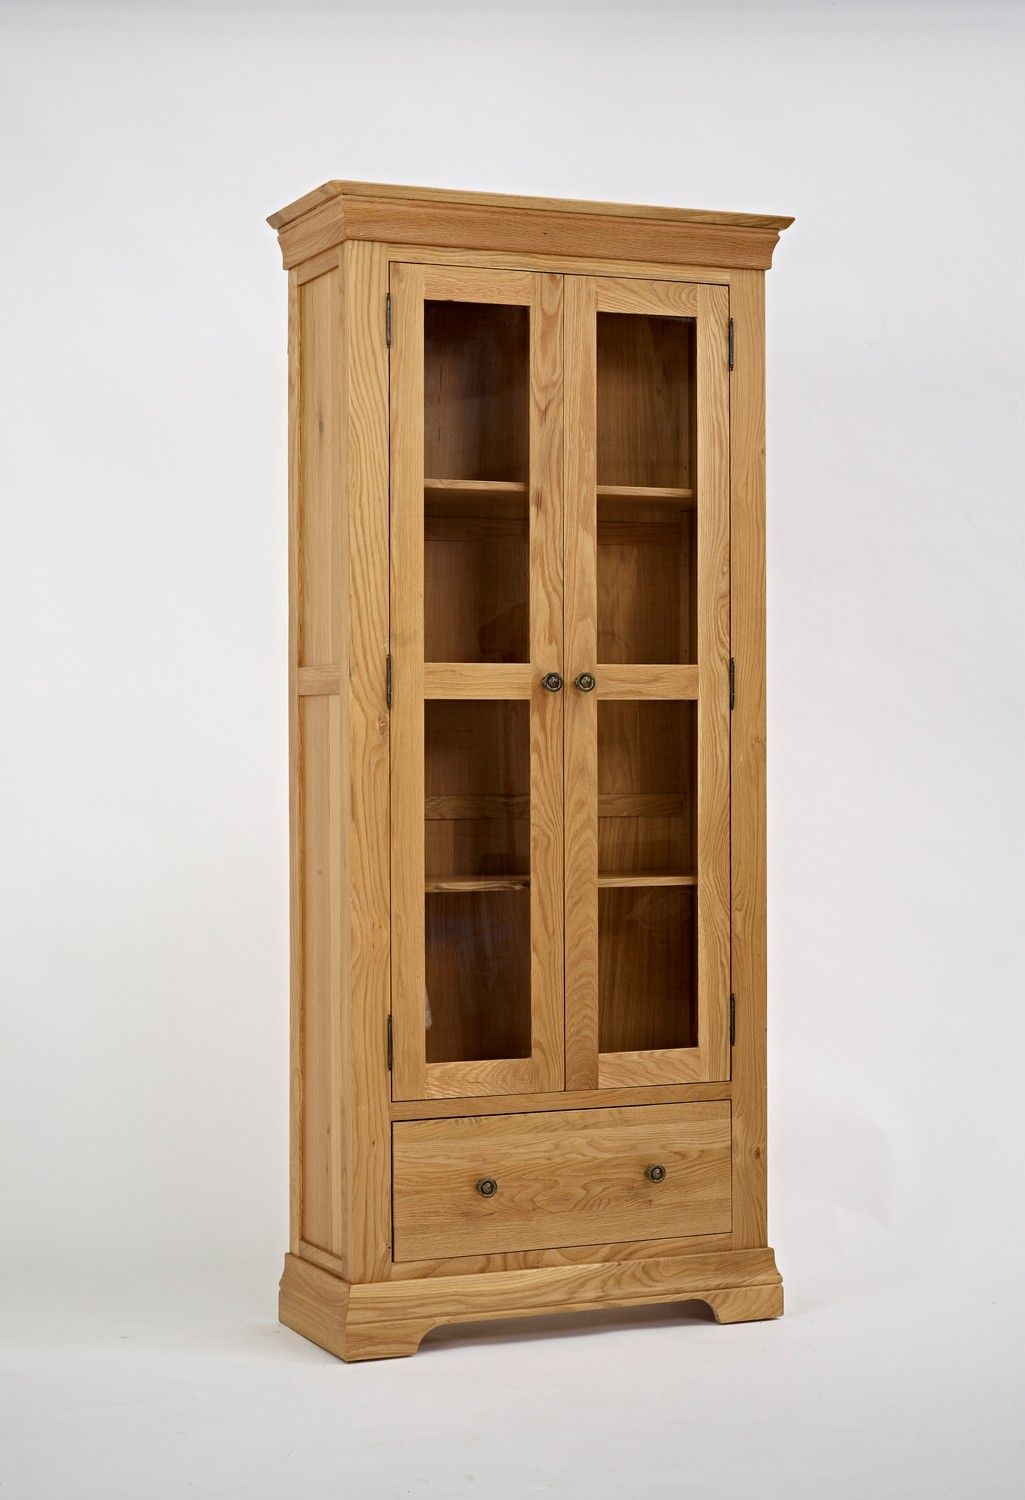 Normandy Oak Display Cabinet With Smooth Curves And An Elegant